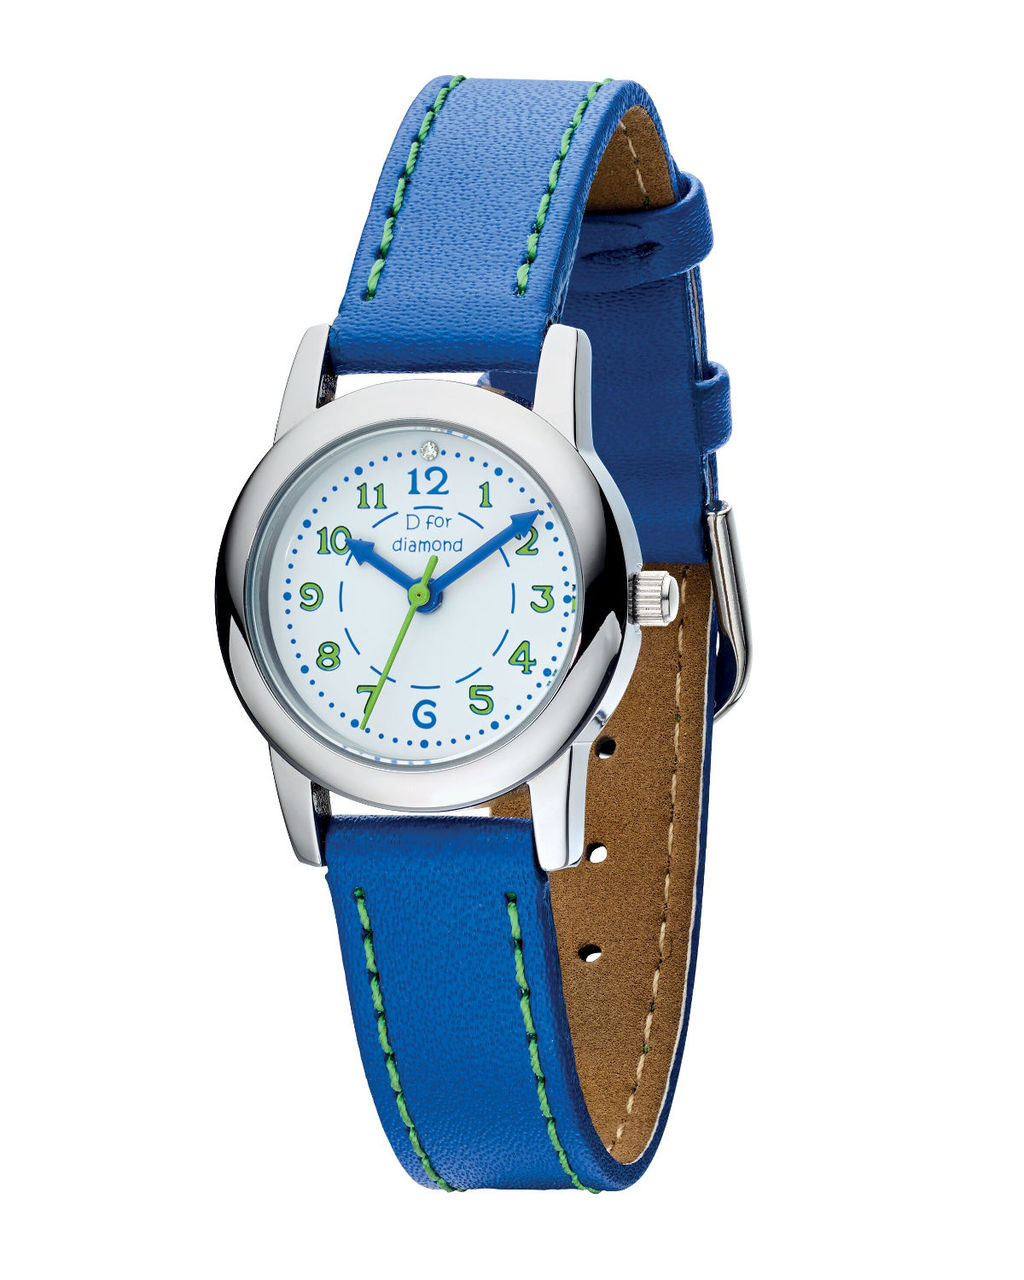 Find great deals on eBay for boys wrist watch. Shop with confidence.